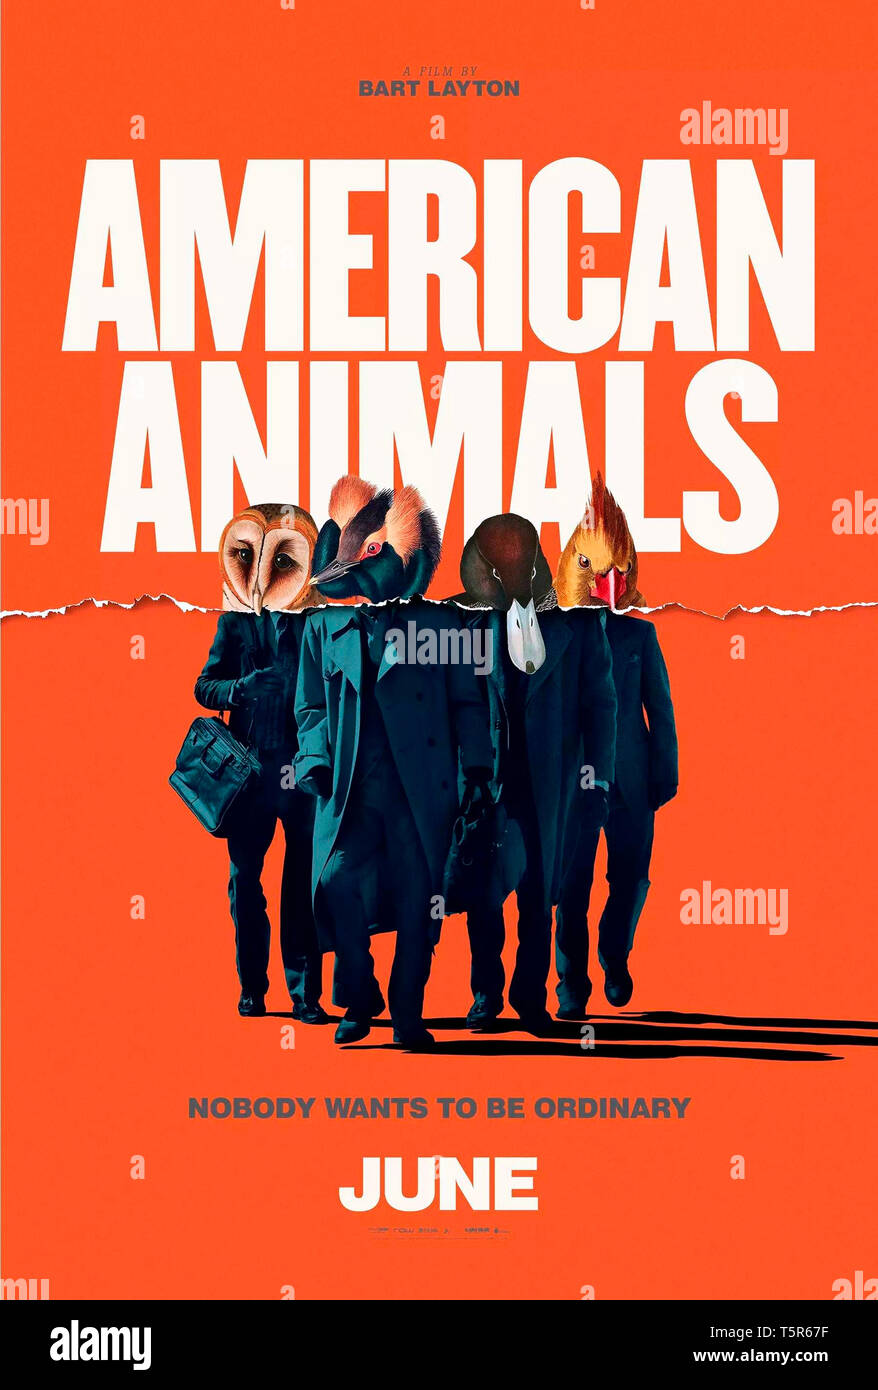 AMERICAN ANIMALS 2018 de Bart Layton teaser americain Prod DB © Film4 - New Amsterdam Film Company - RAW / DR Stock Photo